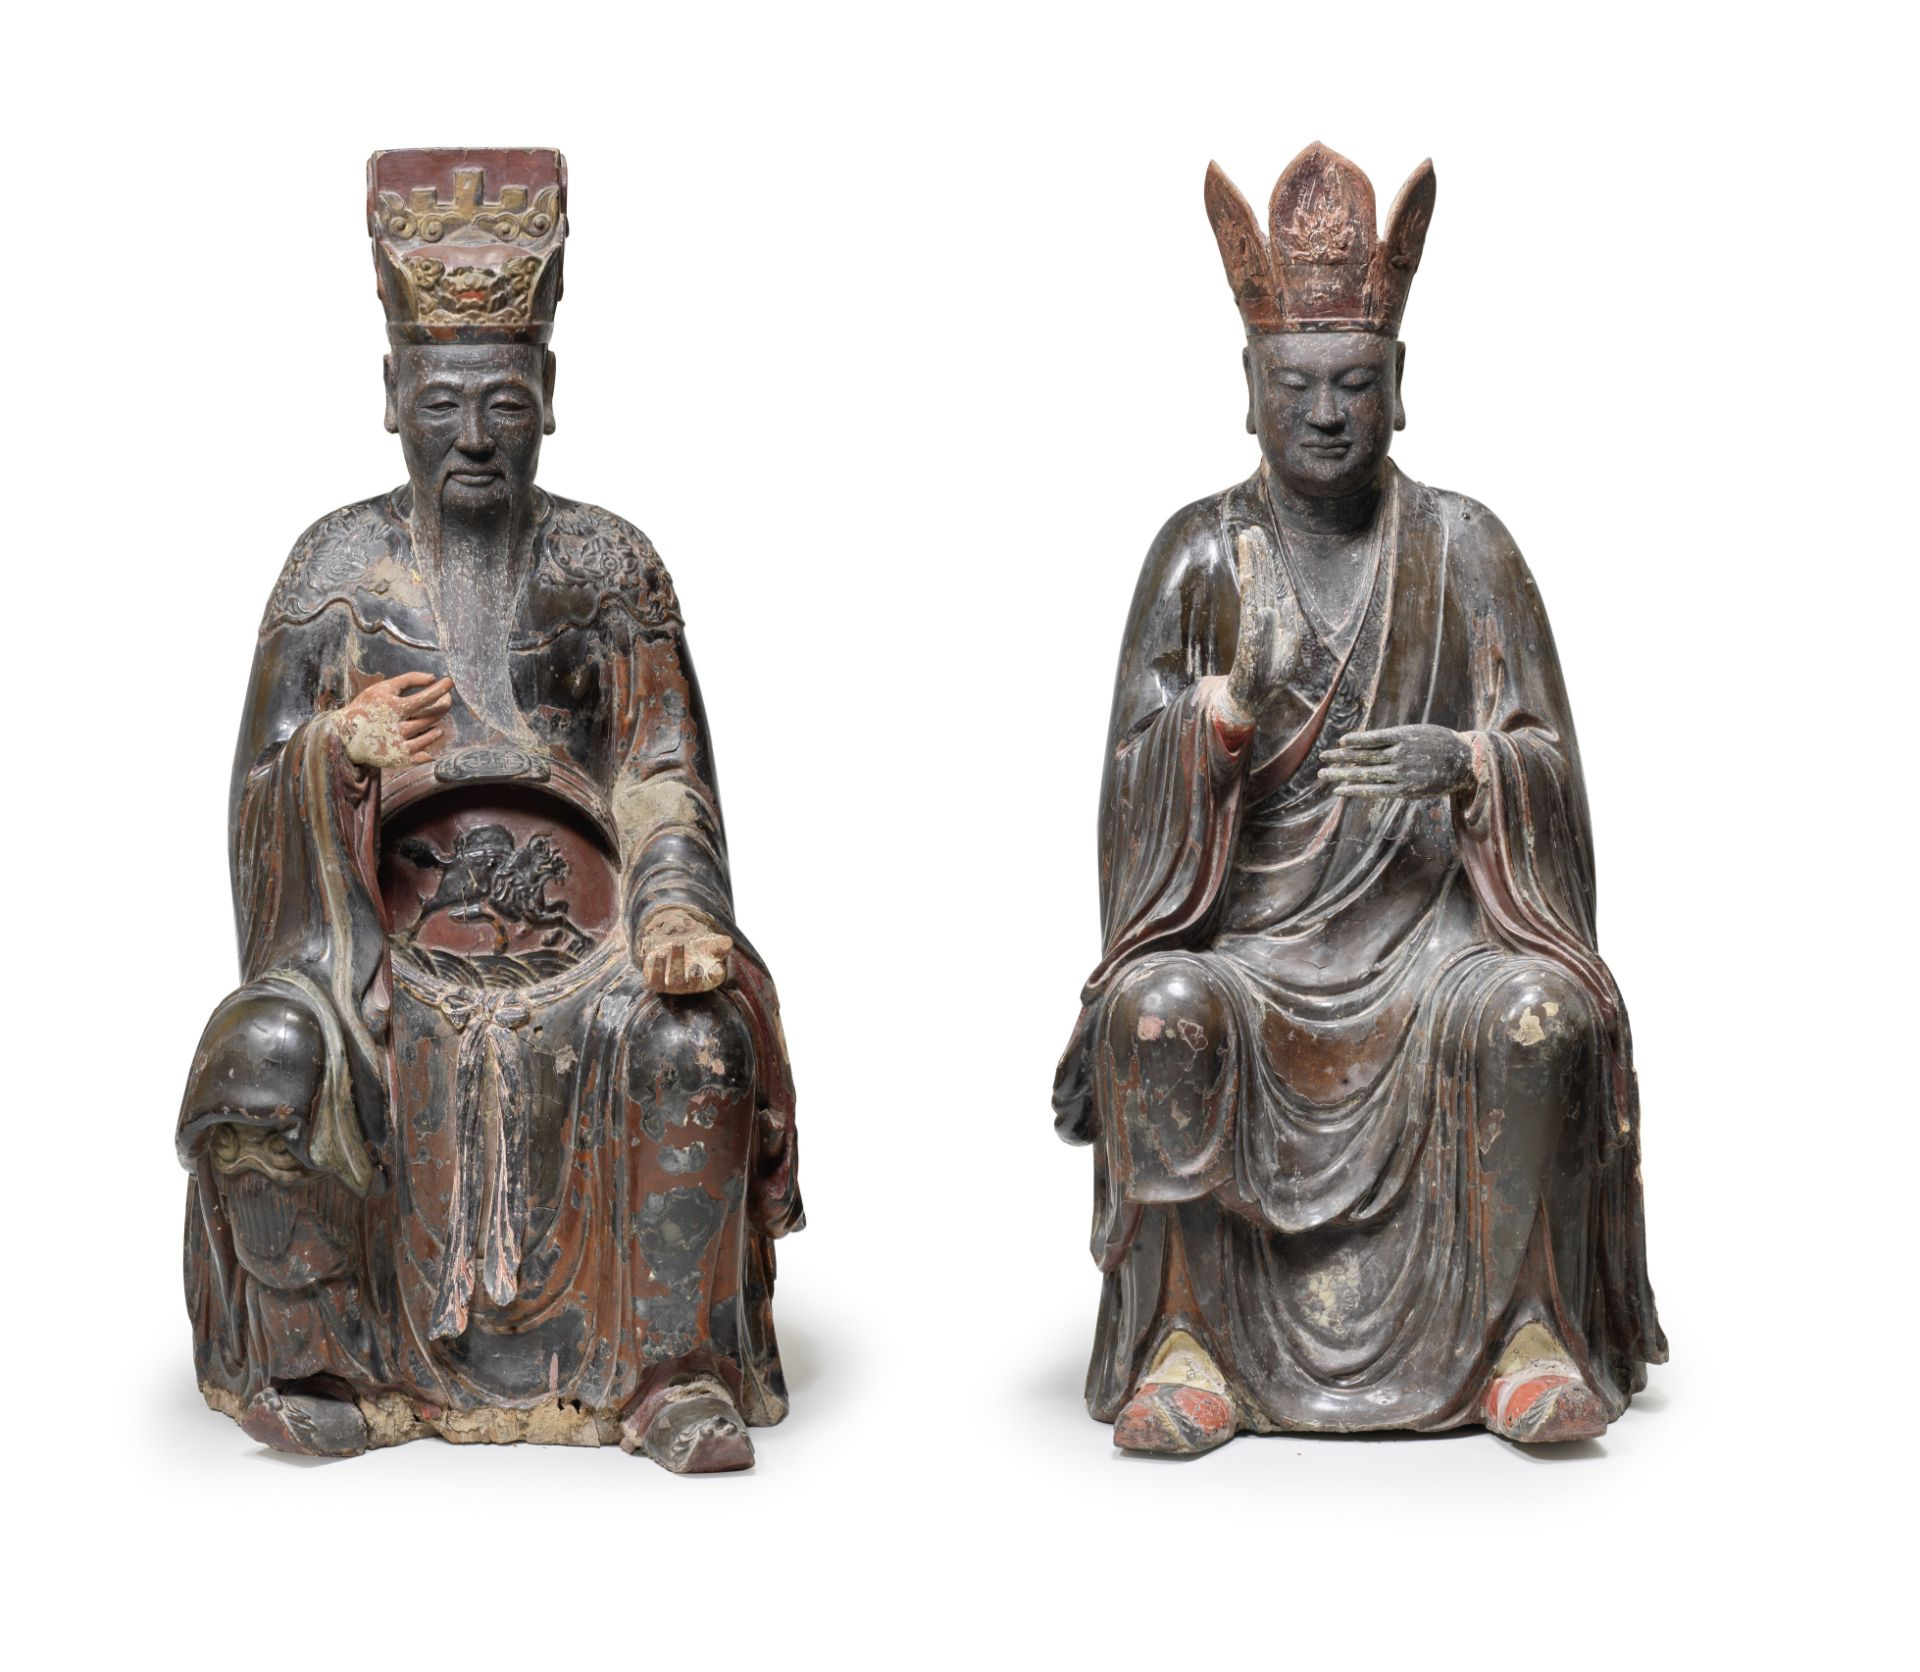 A RARE LARGE PAIR OF LACQUERED WOOD FIGURES OF DIGNITARIES Southeast Asia, circa 17th century (4)